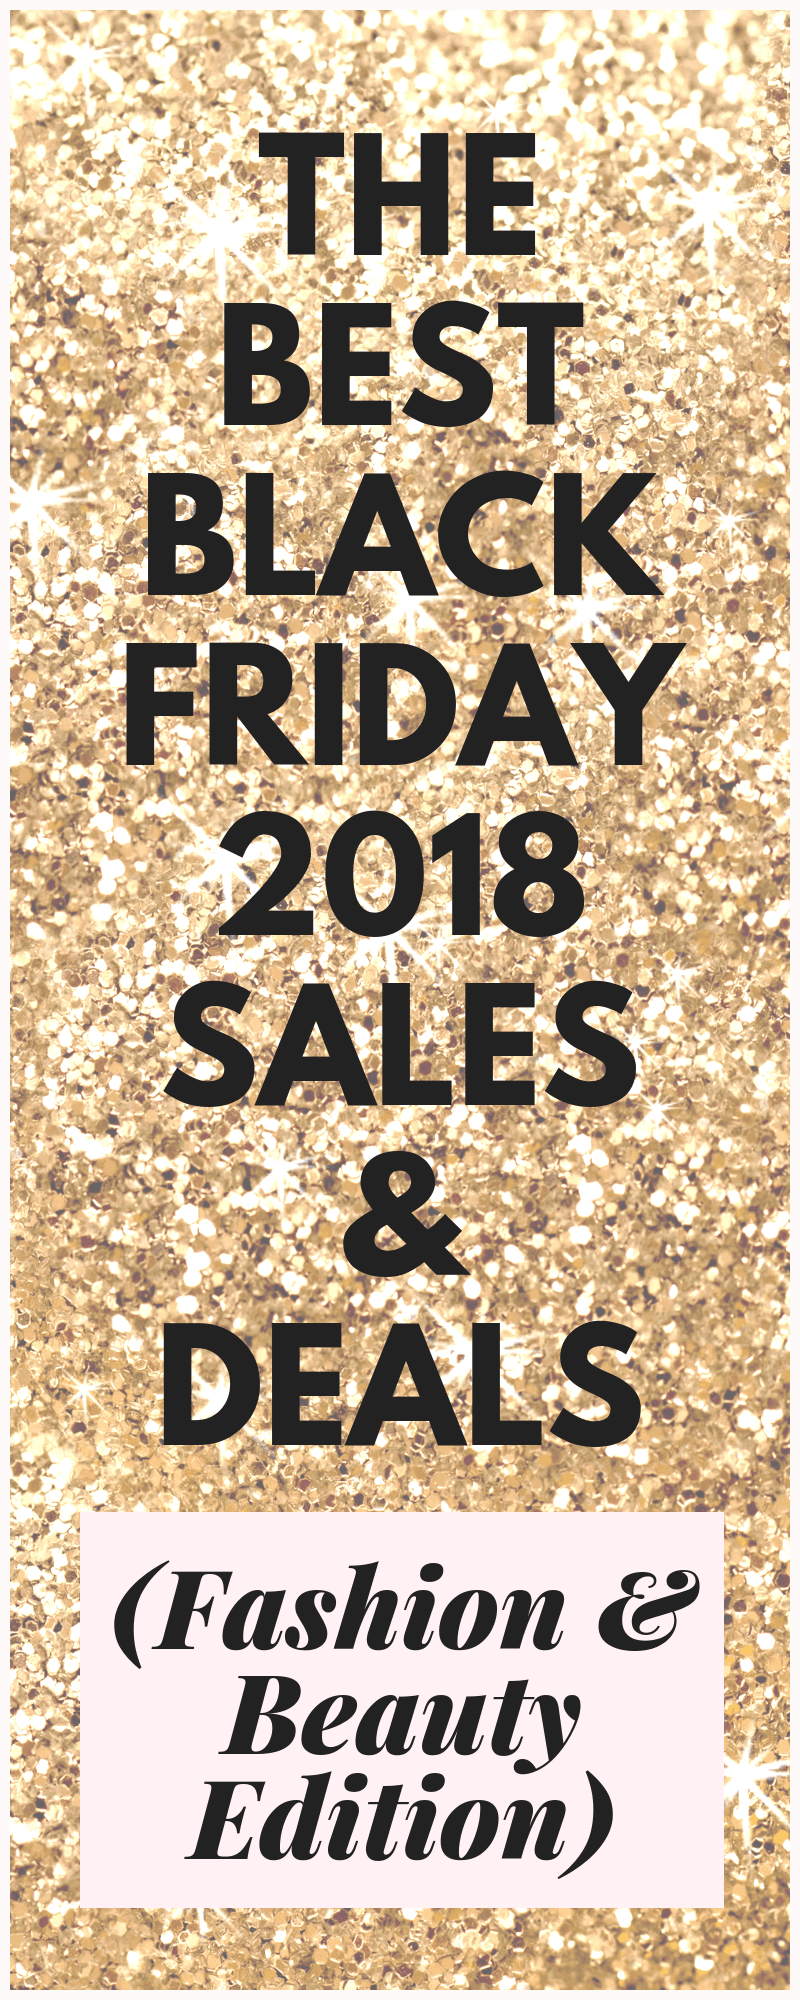 The best Black Friday 2018 sales and deals